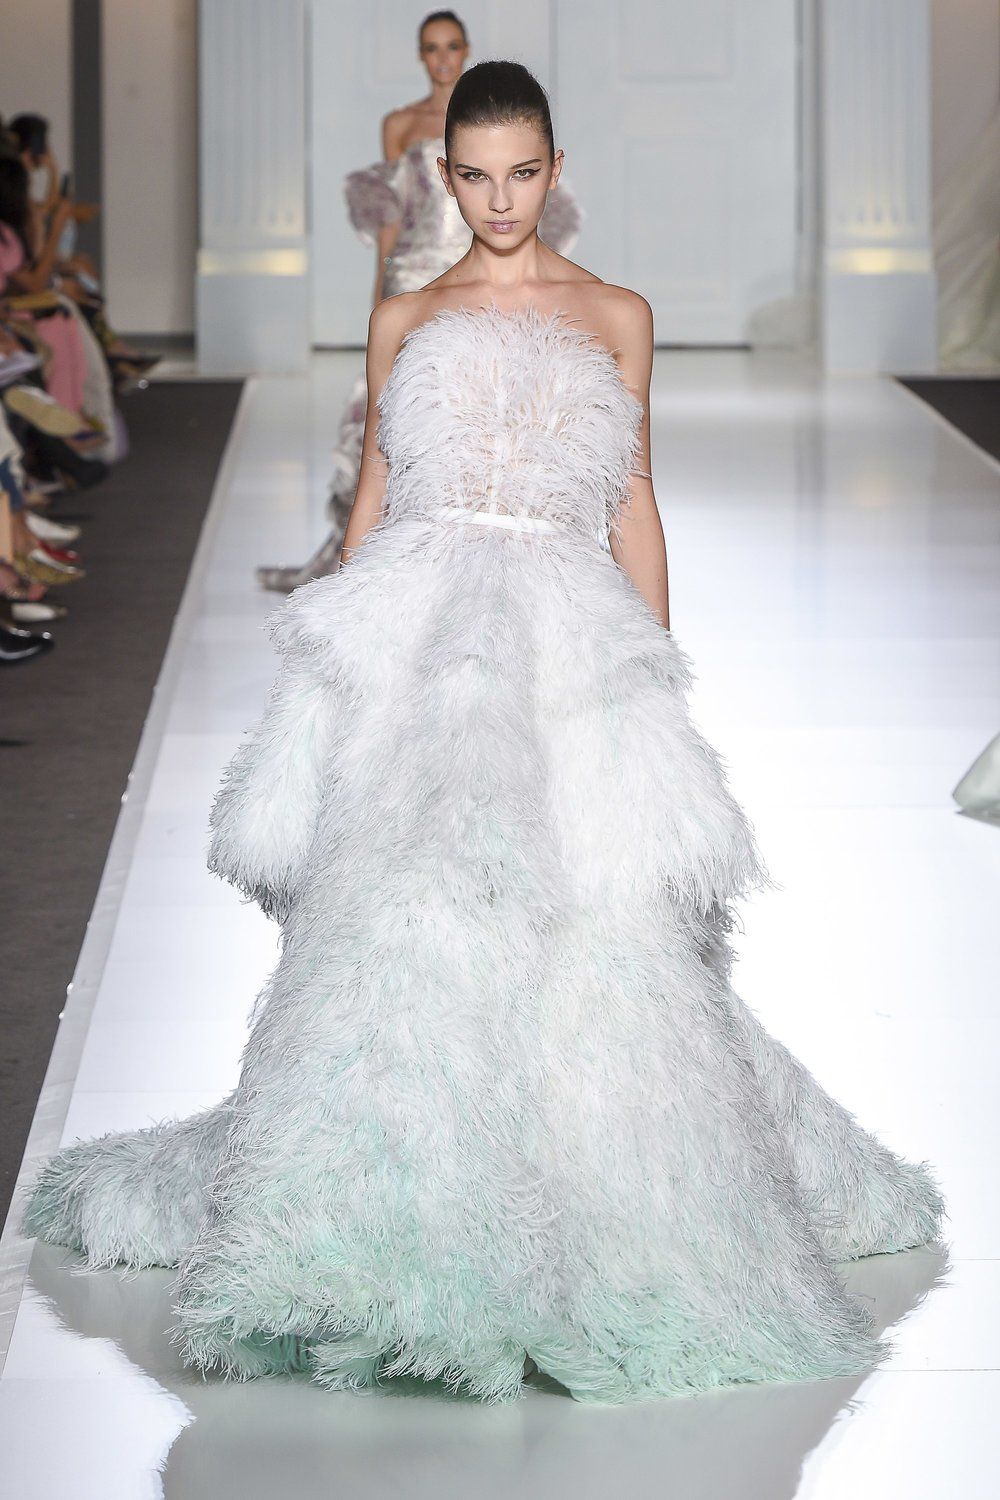 RALPH & RUSSO: Full on Strapless